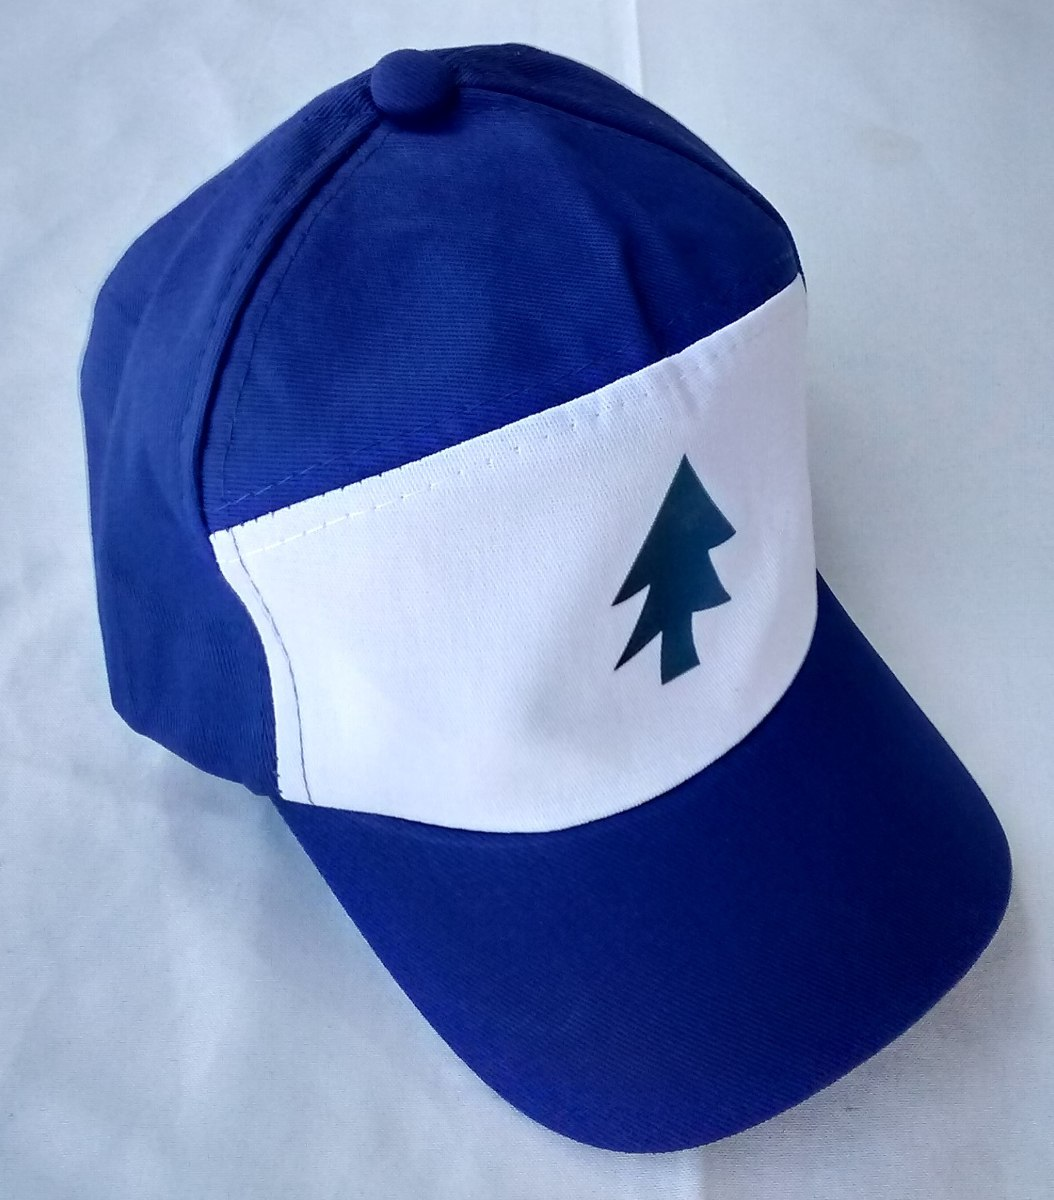 Boné Dipper Pines Gravity Falls De Brim Personagens Disney - R  28 ... 1e2b32d0eac